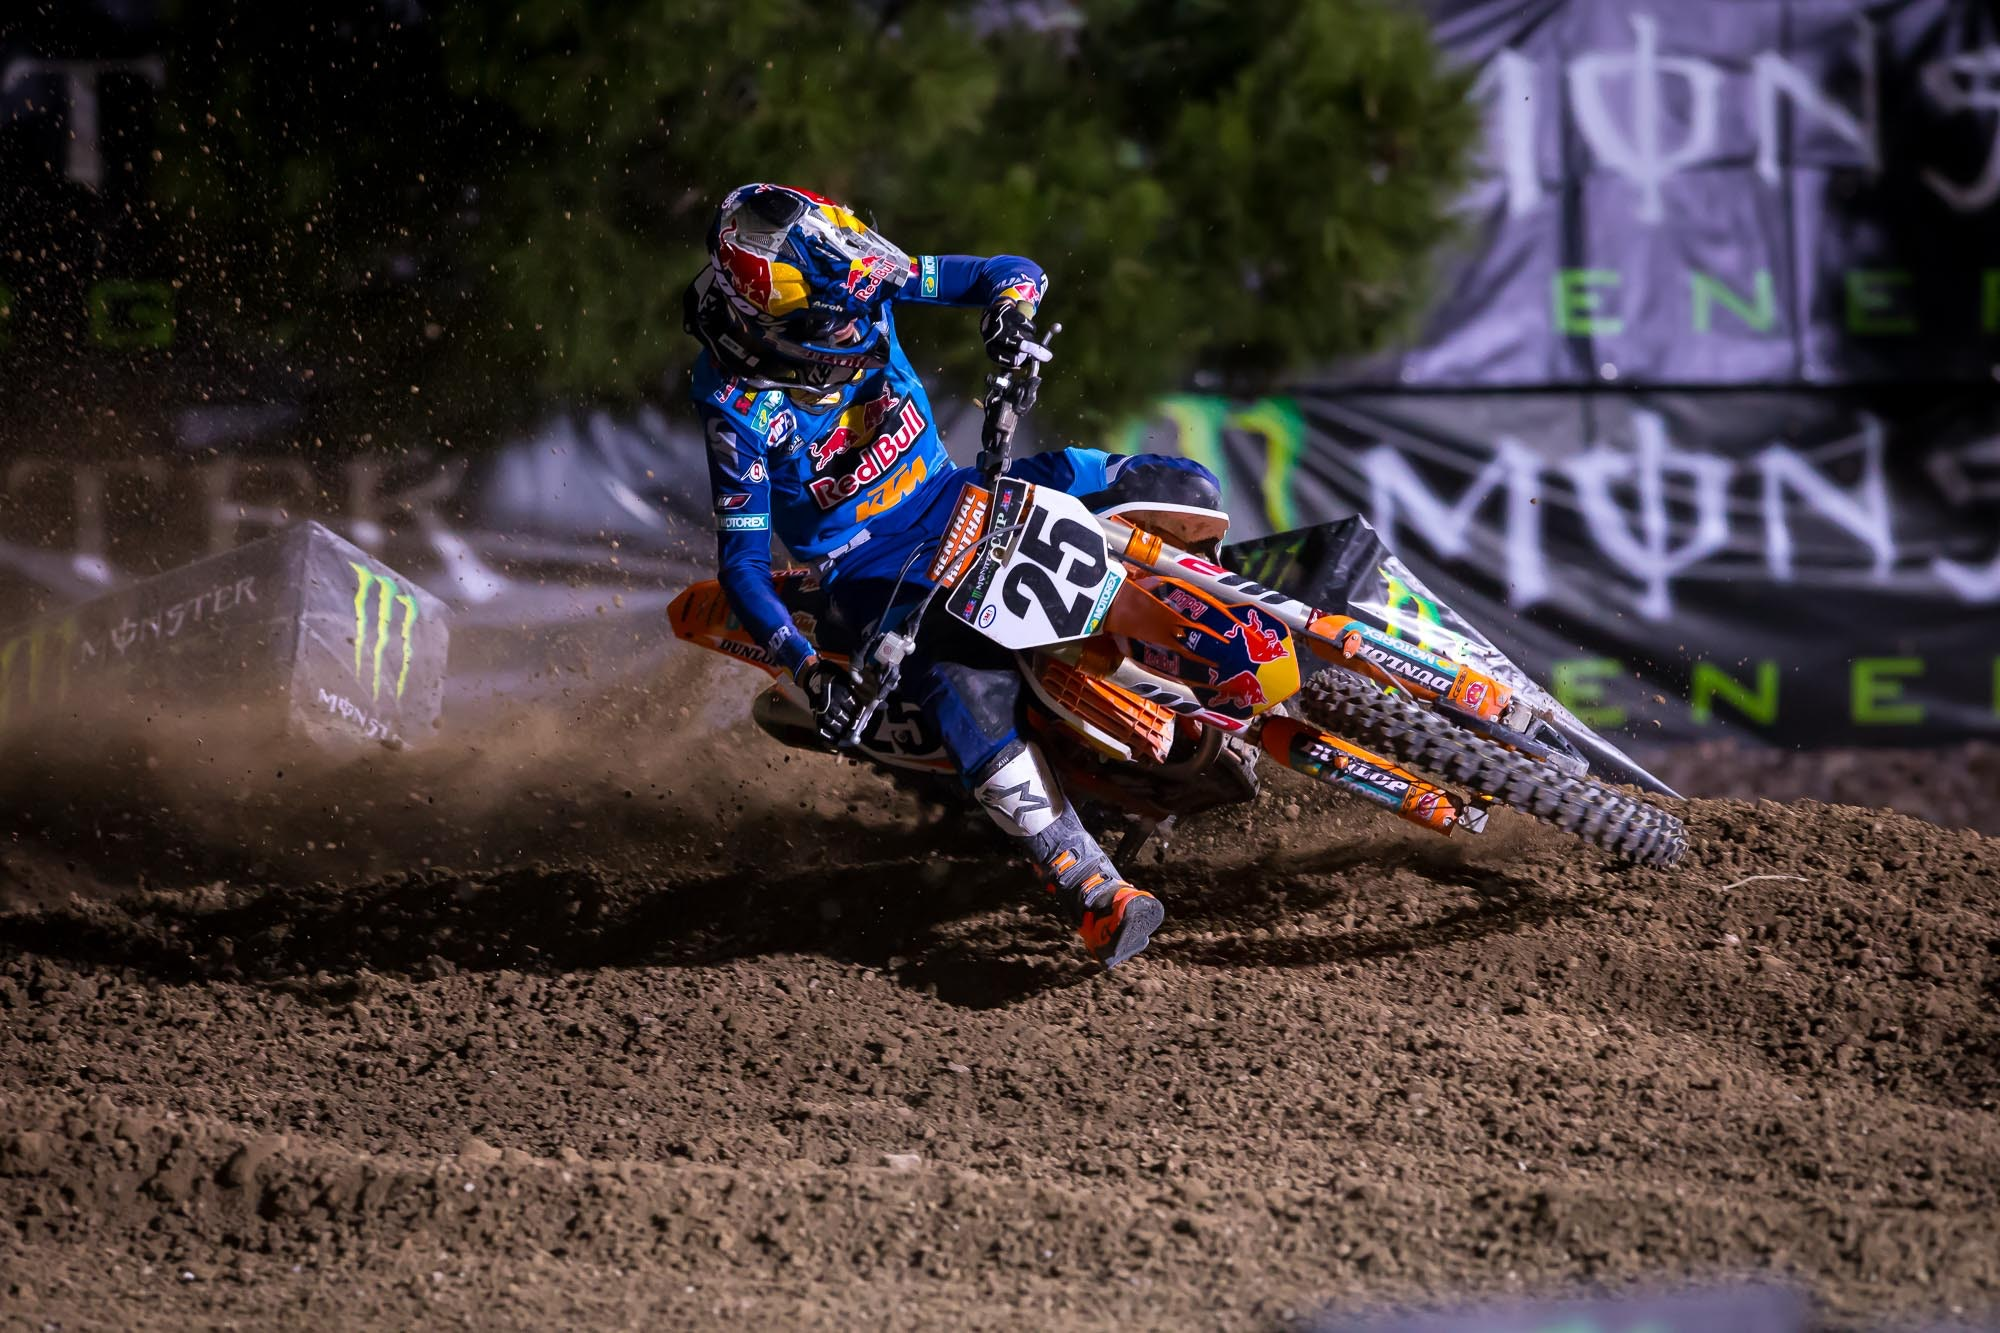 Marvin Musquin was fast tonight, going 4-3-2 for third overall.